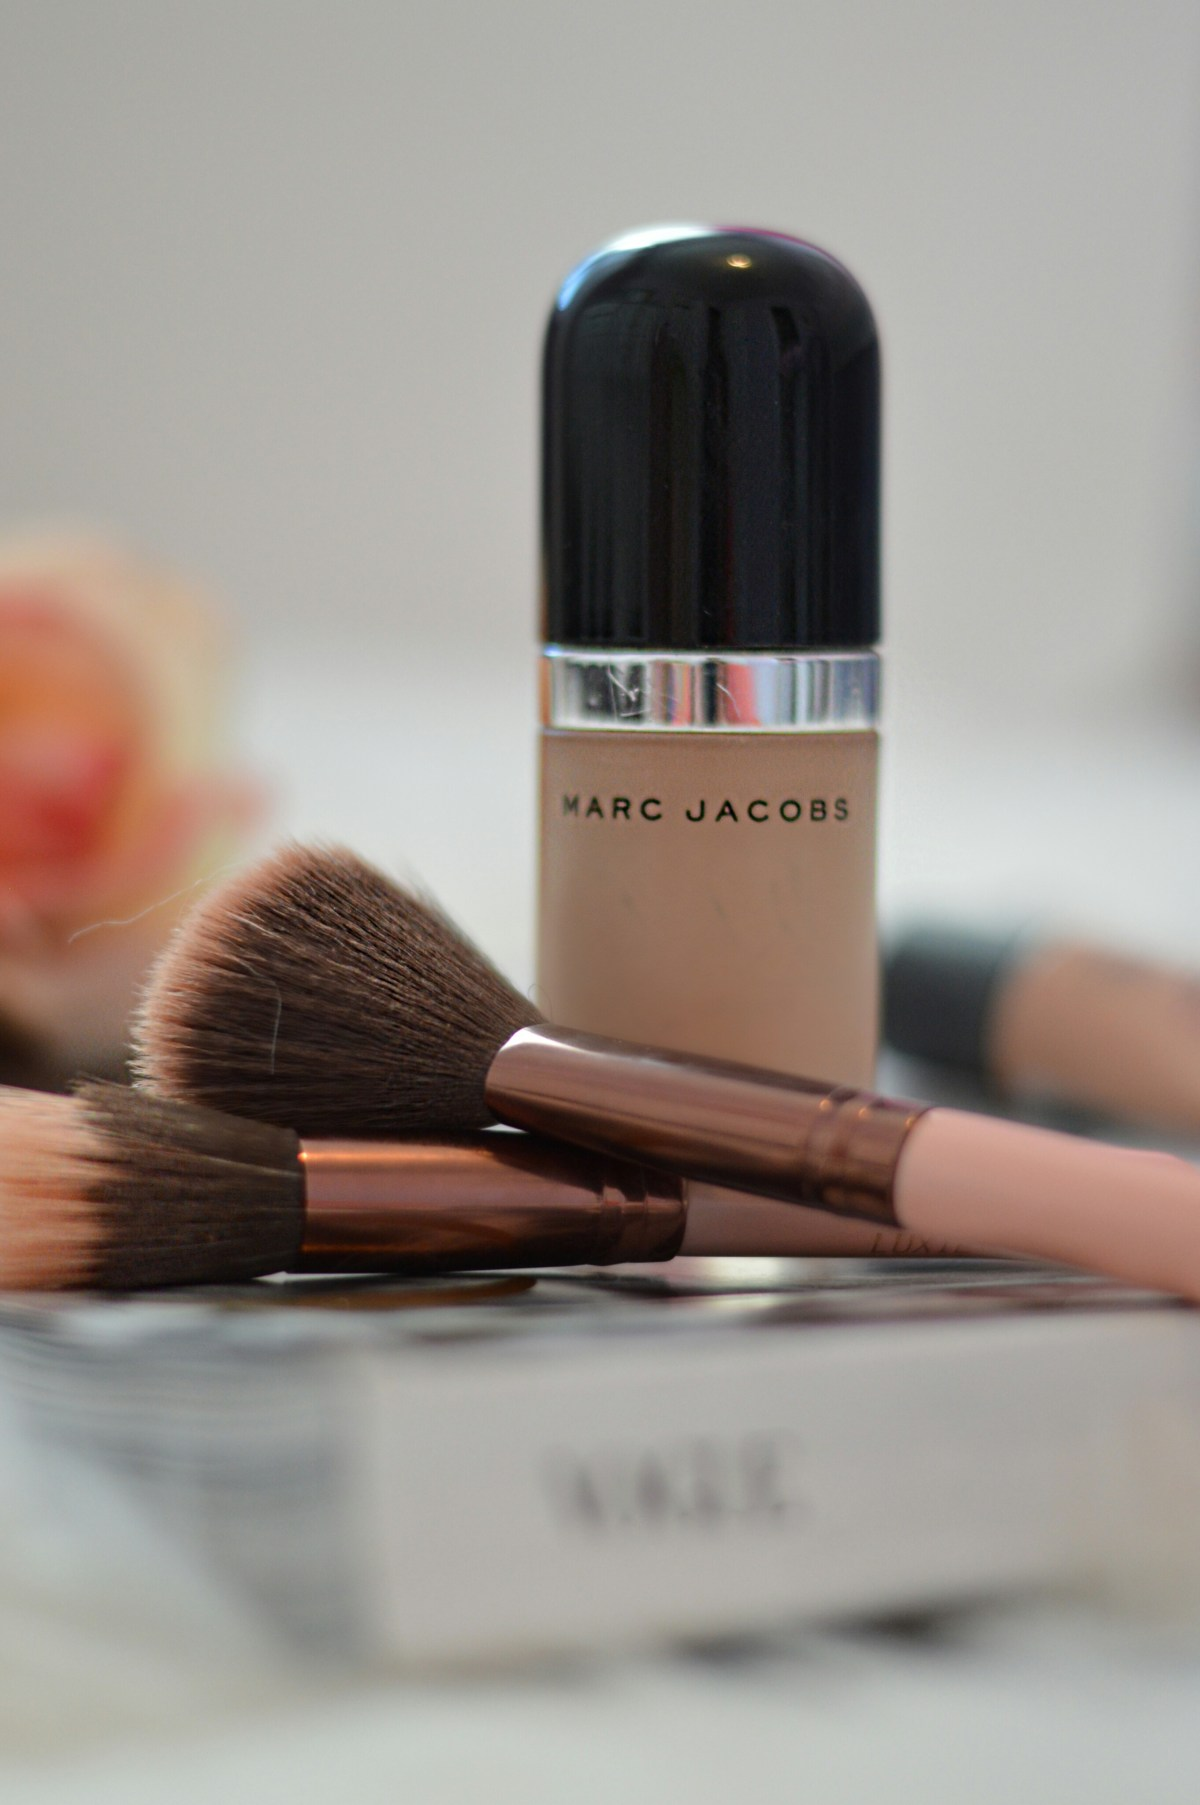 Georgia Lifestyle blogger Miss Magnolia Soul's beauty review on Marc Jacobs Remarcable Full Coverage Foundation Make Up